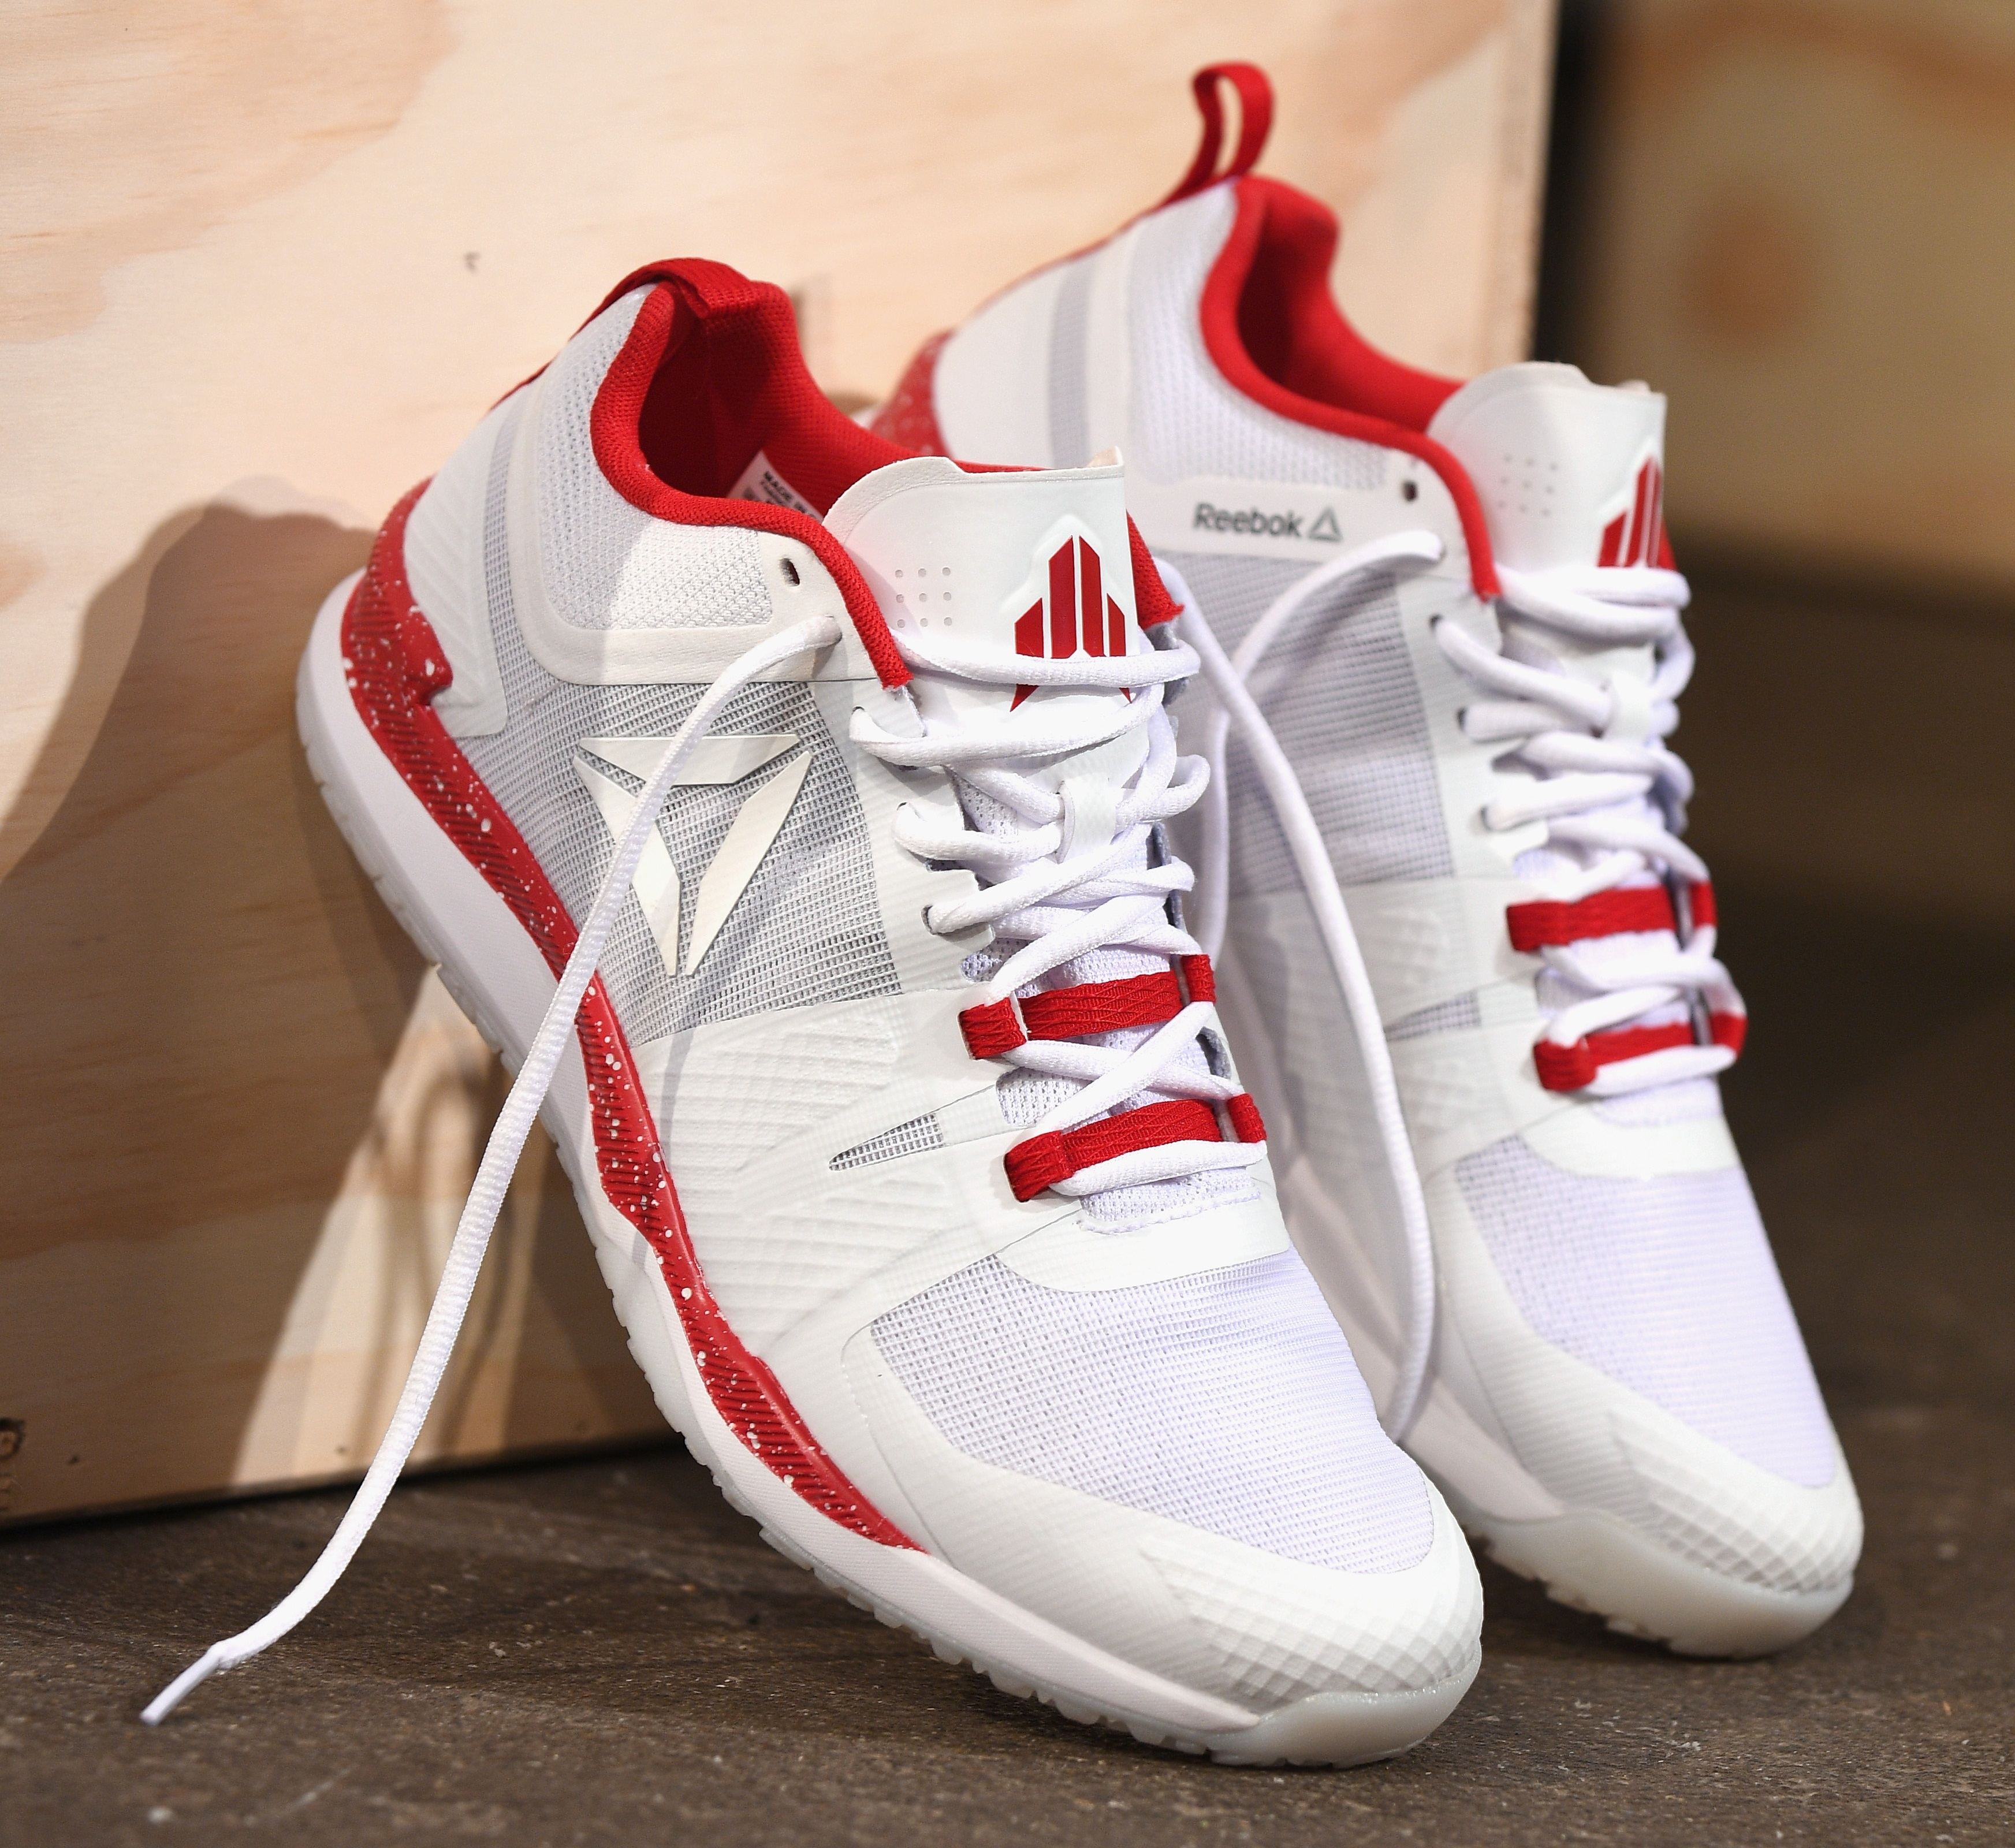 NEW YORK, NY - JUNE 23: A view of The Reebok JJ I during the Launch of J.J. Watt's New Signature Sneaker, The Reebok JJ I at ArtBeam on June 23, 2016 in New York City. (Photo by Bryan Bedder/Getty Images for Reebok)